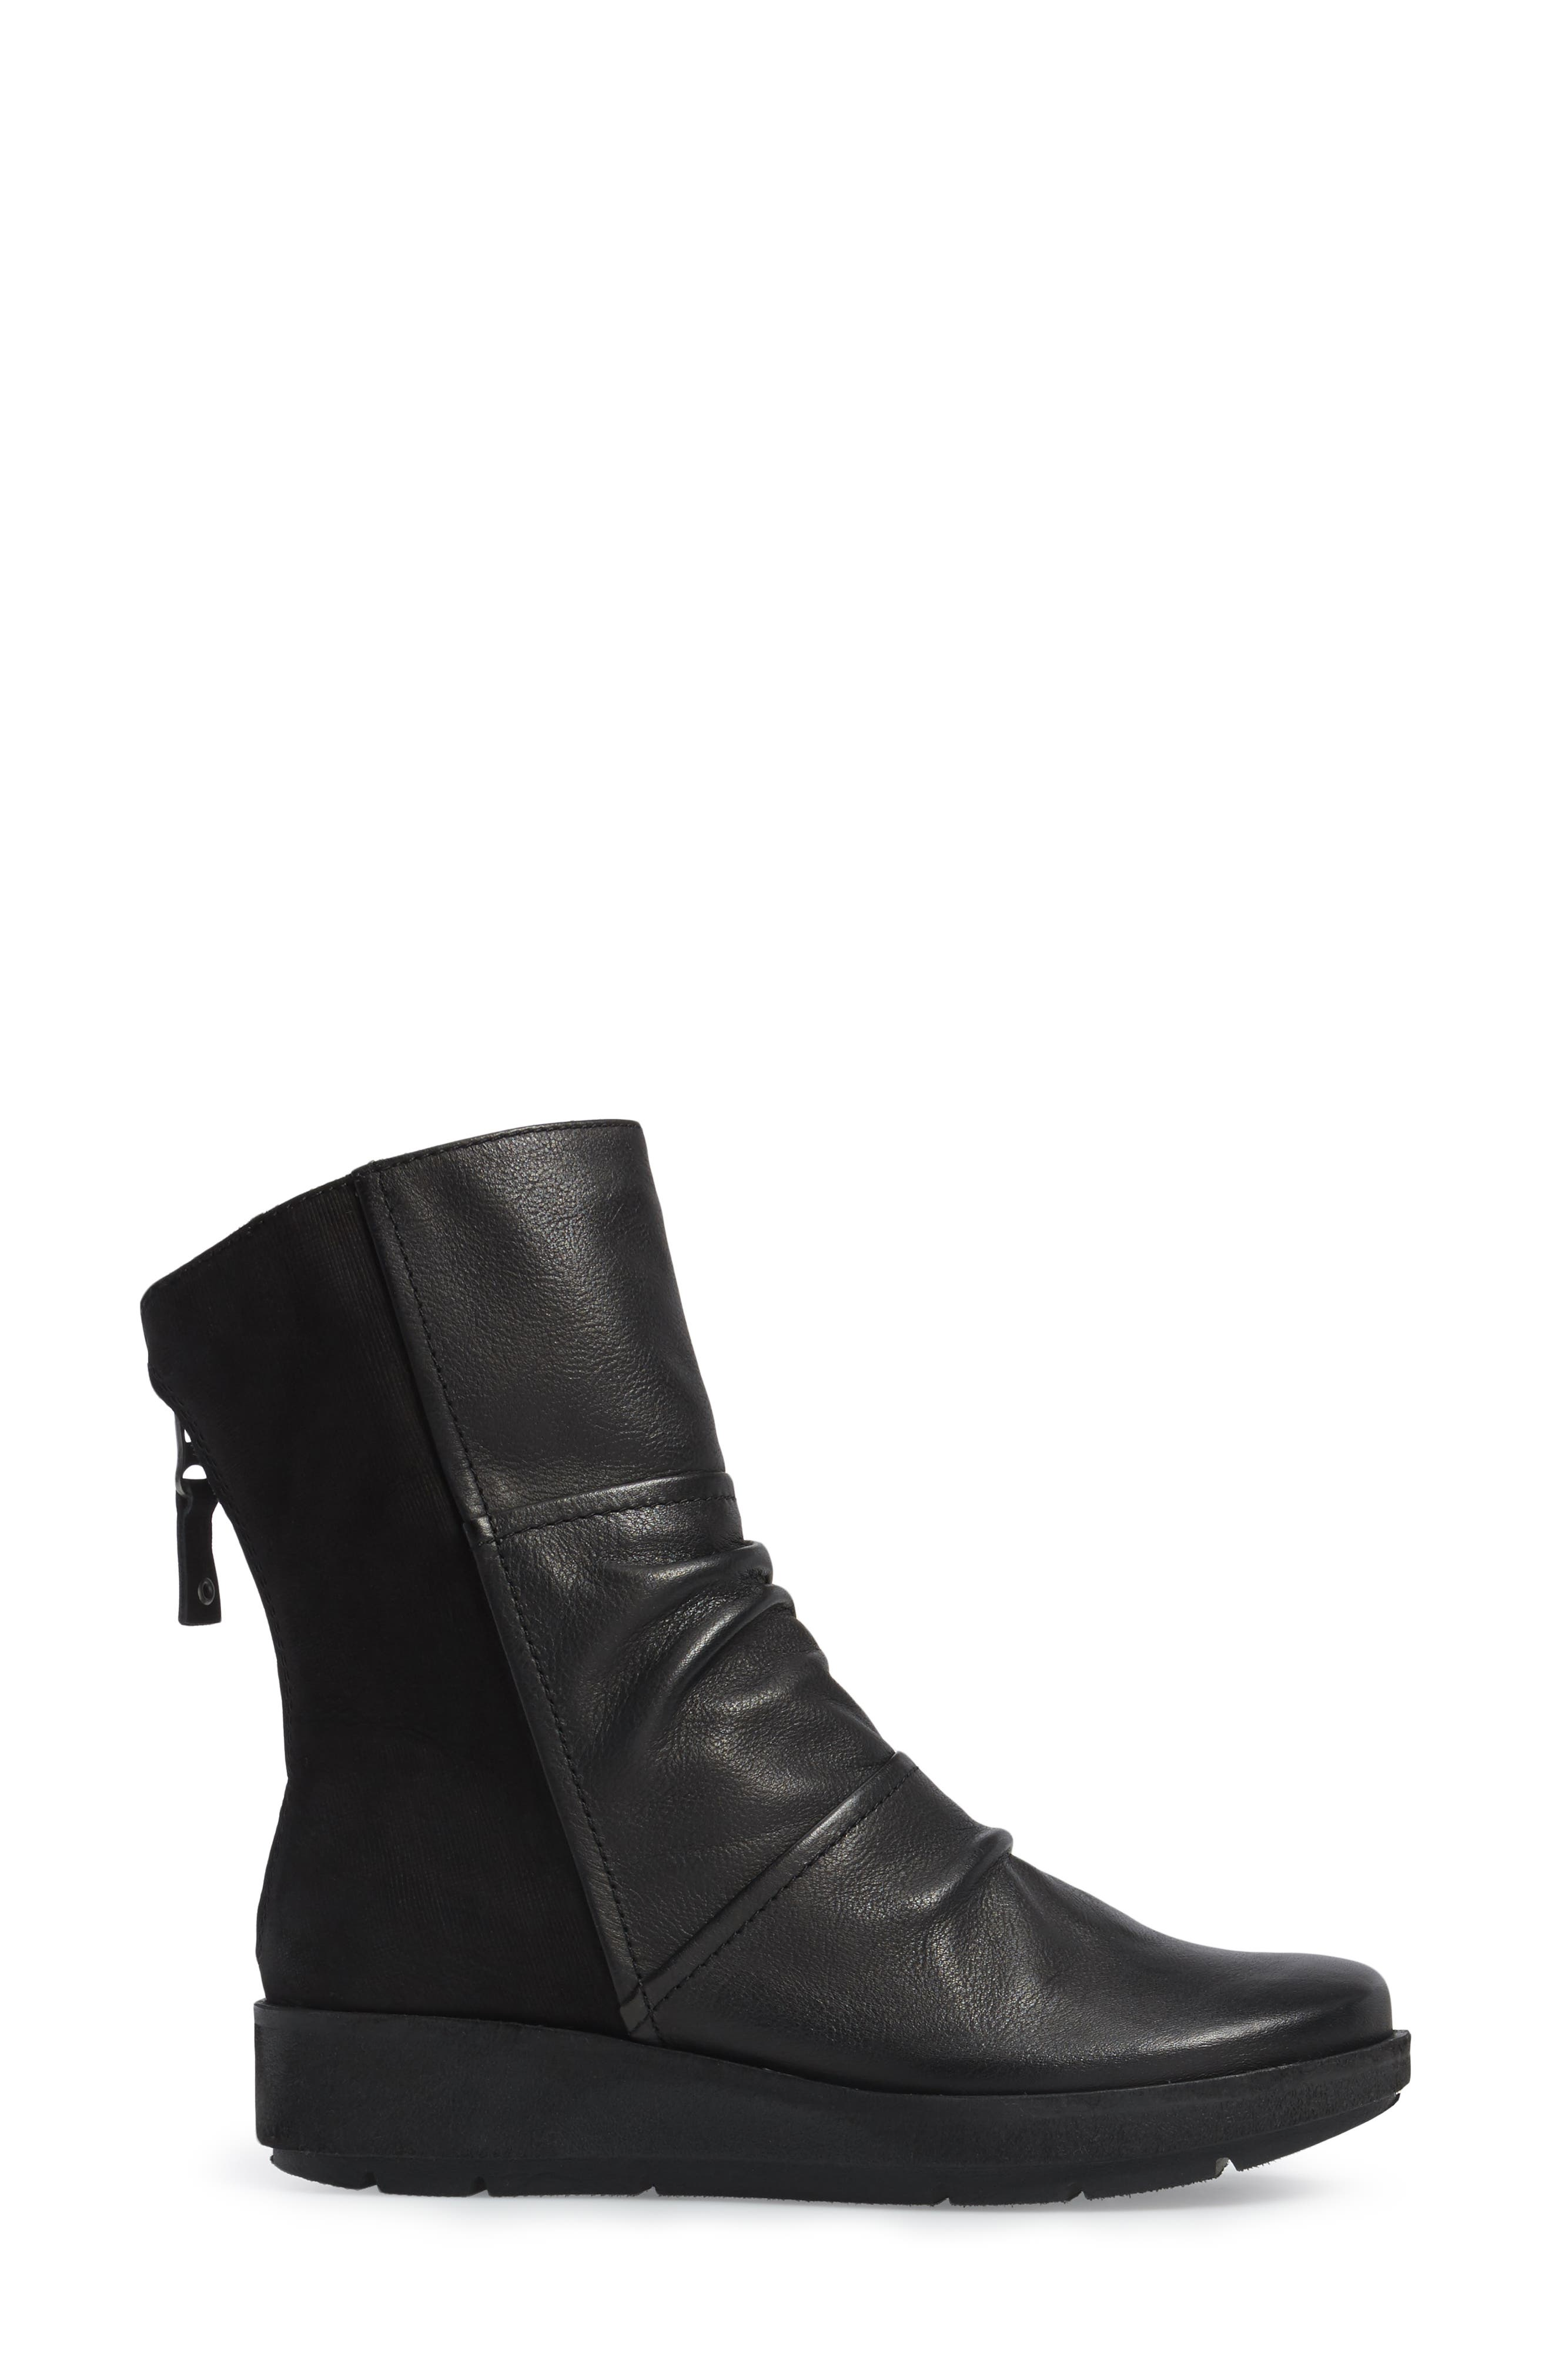 Pilgrim Boot,                             Alternate thumbnail 3, color,                             Black Leather